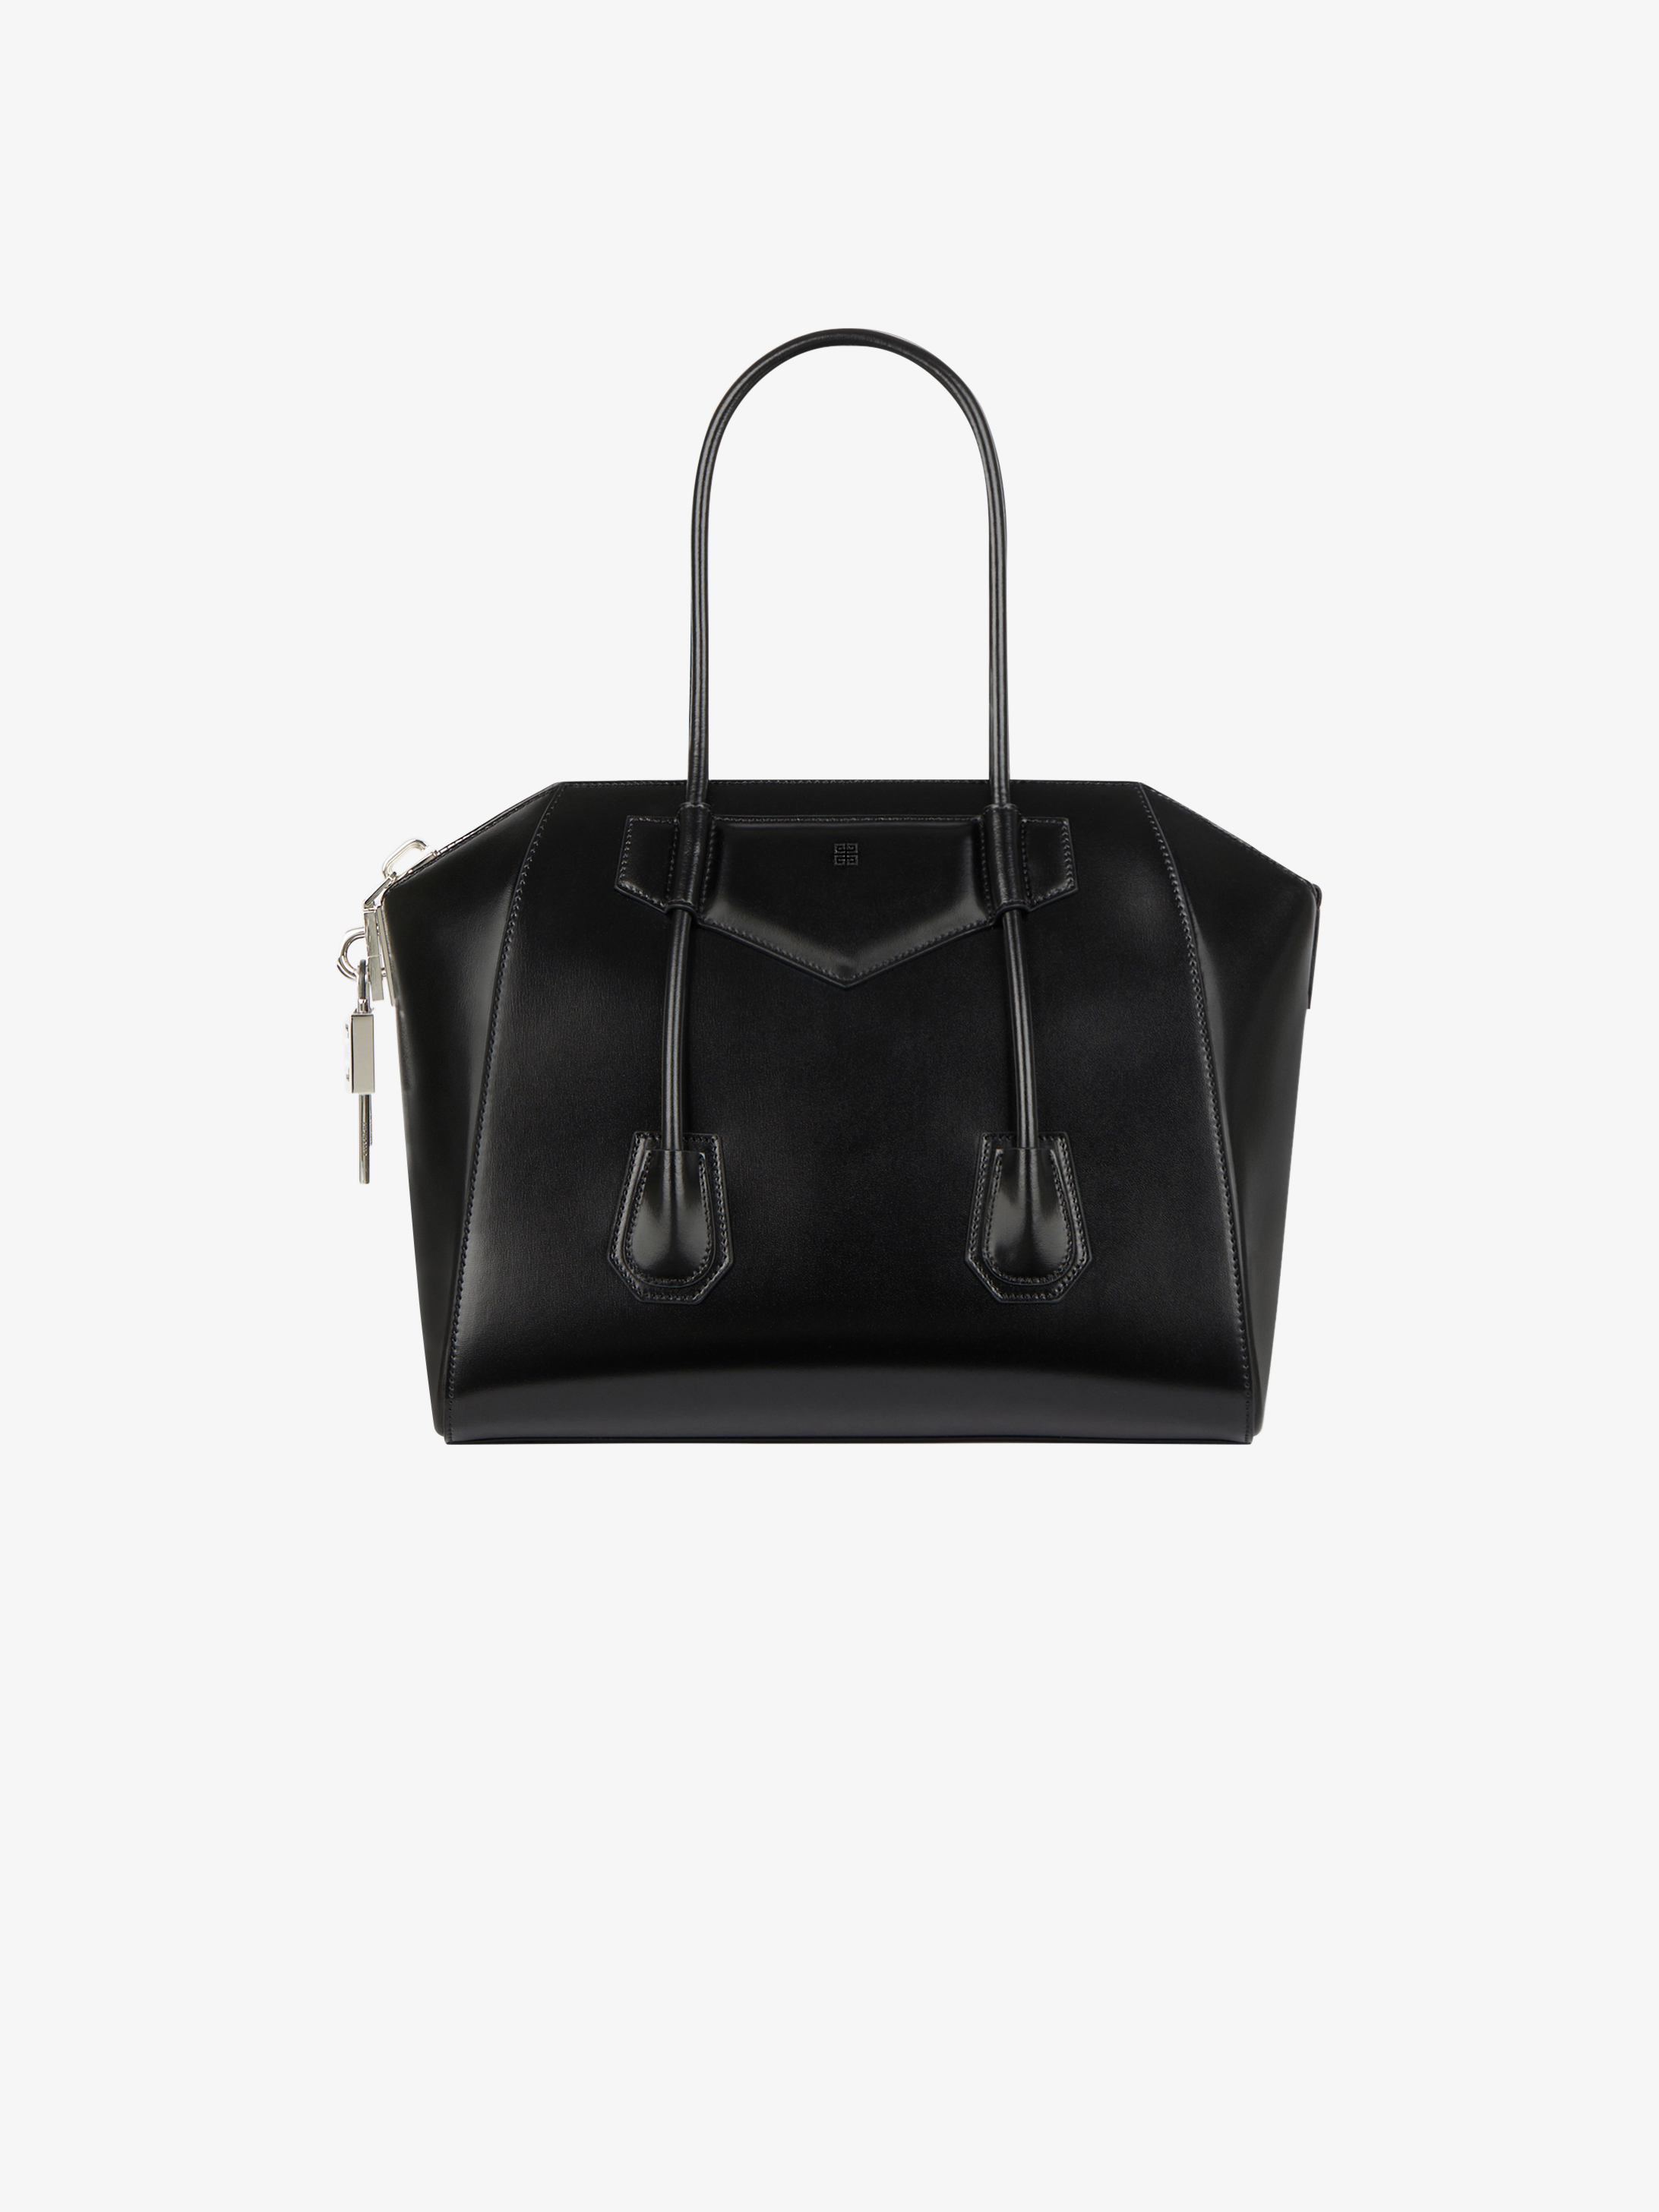 Medium Antigona lock bag in box leather